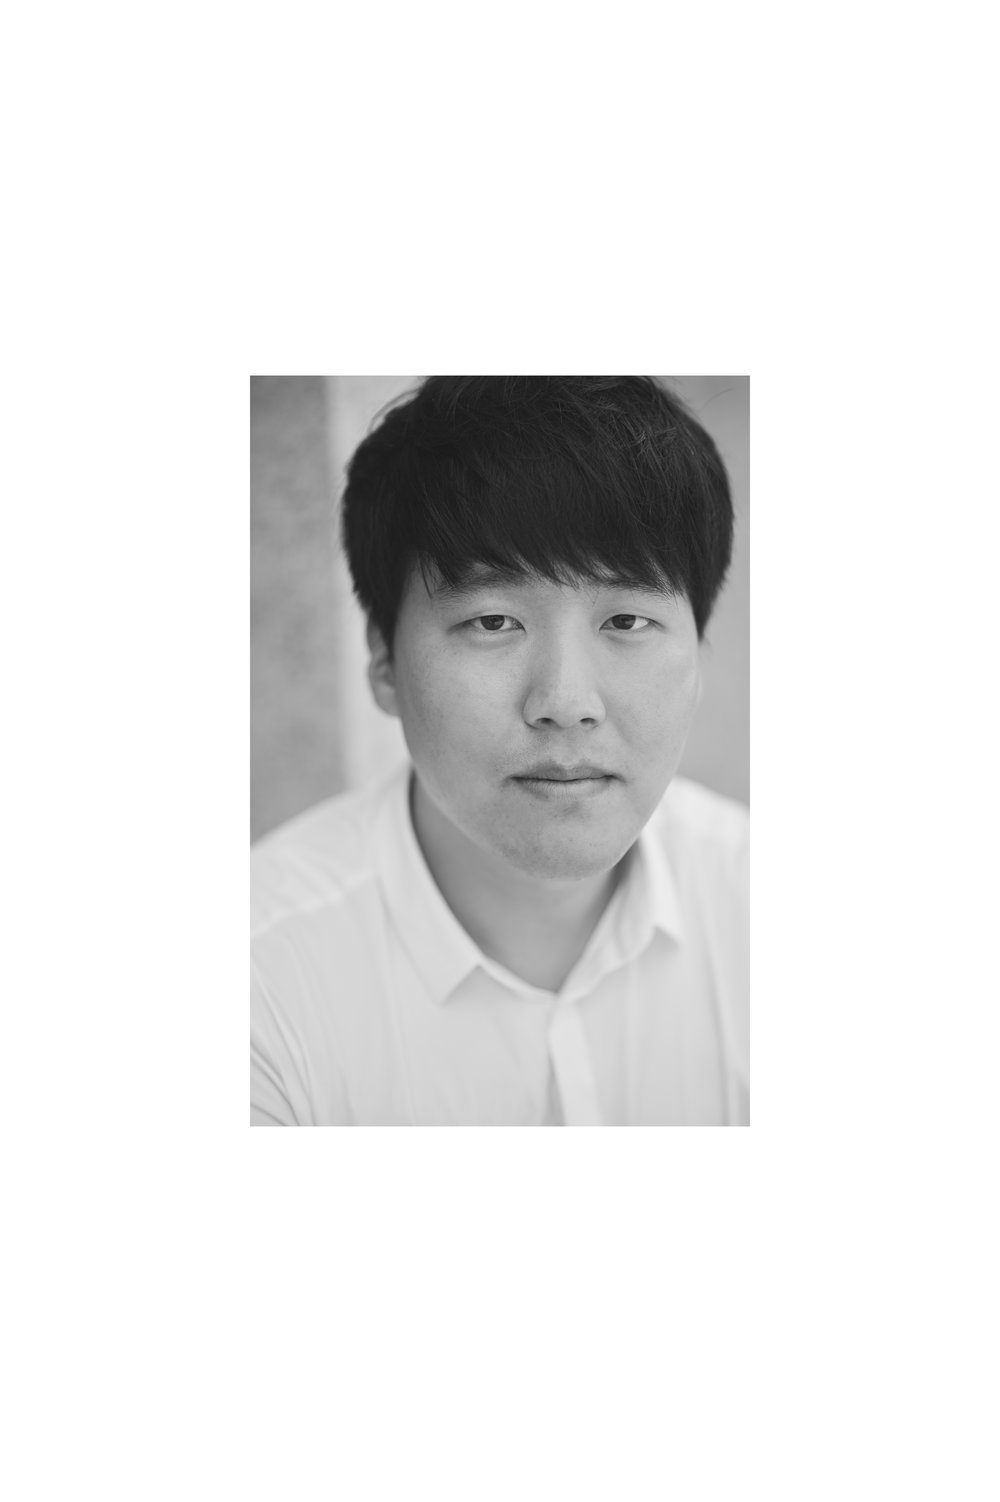 CHANG KYU LEE -  Chang Kyu Lee is a New York based Architect and Principal at GEBDESIGN.Chang Kyu Lee received his Master's degree in 2015 from Columbia University Graduate School of Architecture Planning and Preservation. He is now a Job Captain at Gensler, New York. He has worked at number of award winning firms including Kengo Kuma in Tokyo, Coop Himmelb(l)au in Vienna, and Hyundai A&E Associates. Co. Ltd in Seoul. He founded